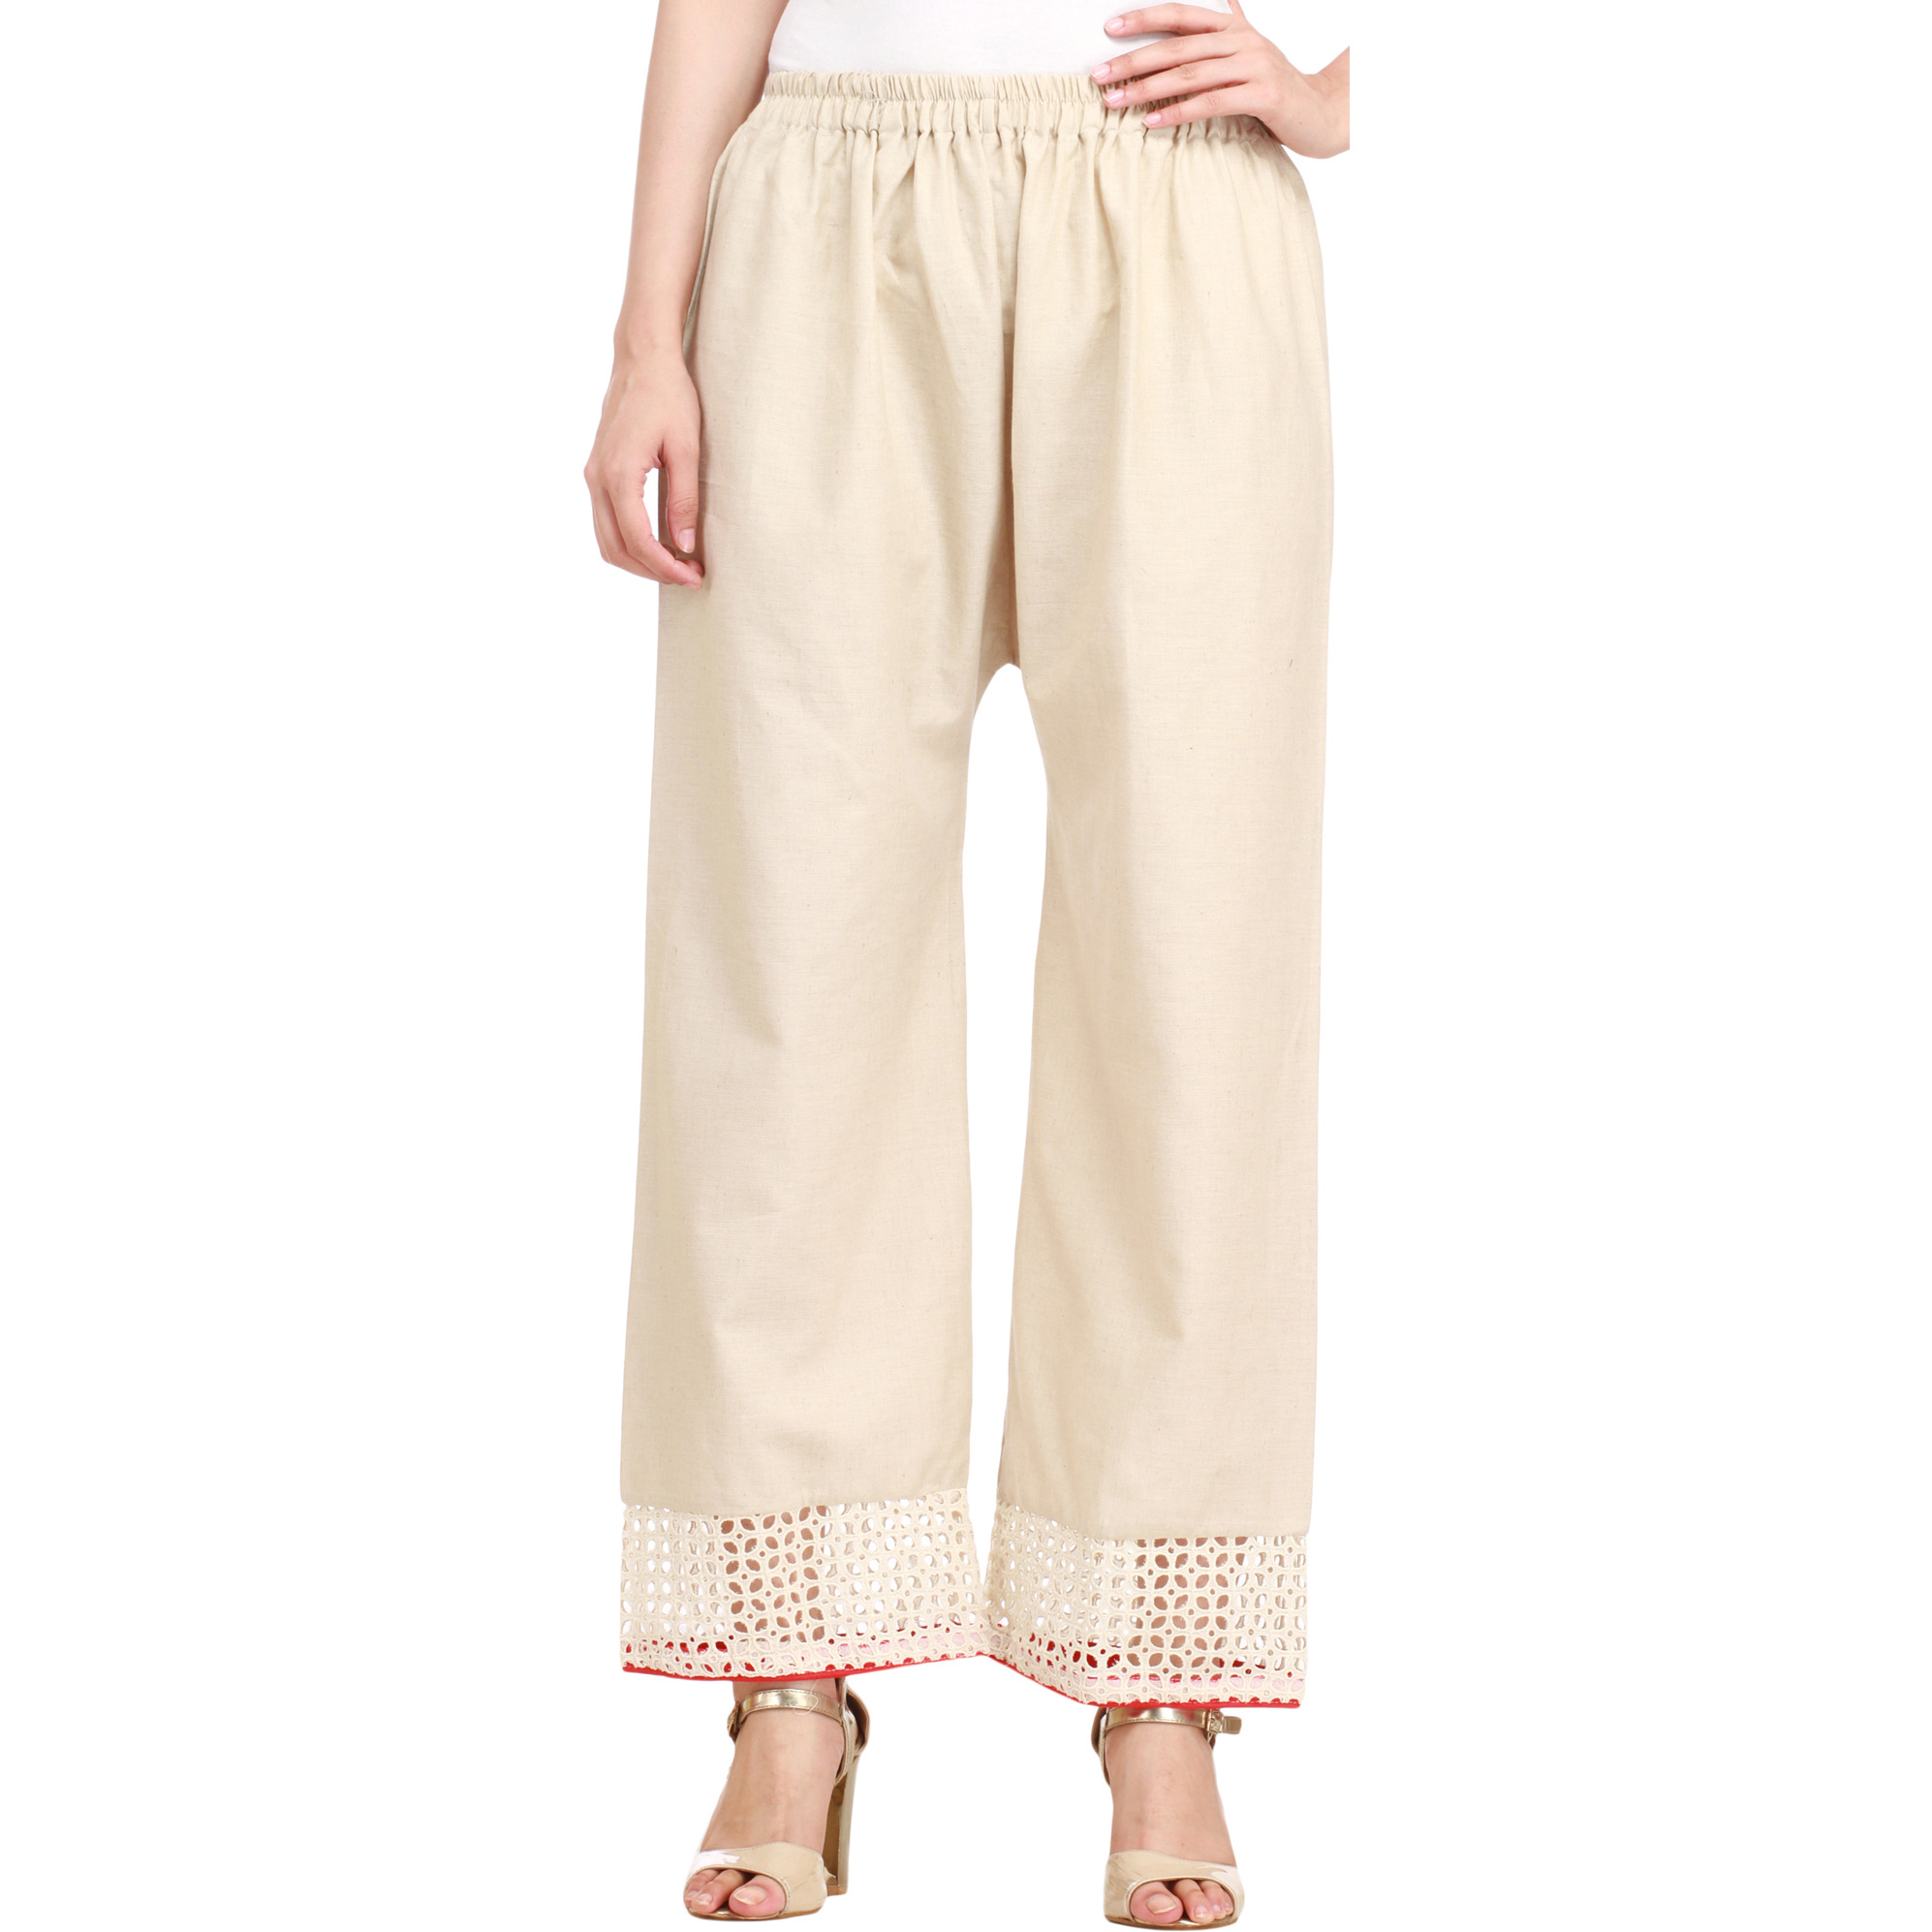 Whitecap-Gray Khadi Trousers with Cutwork on Border